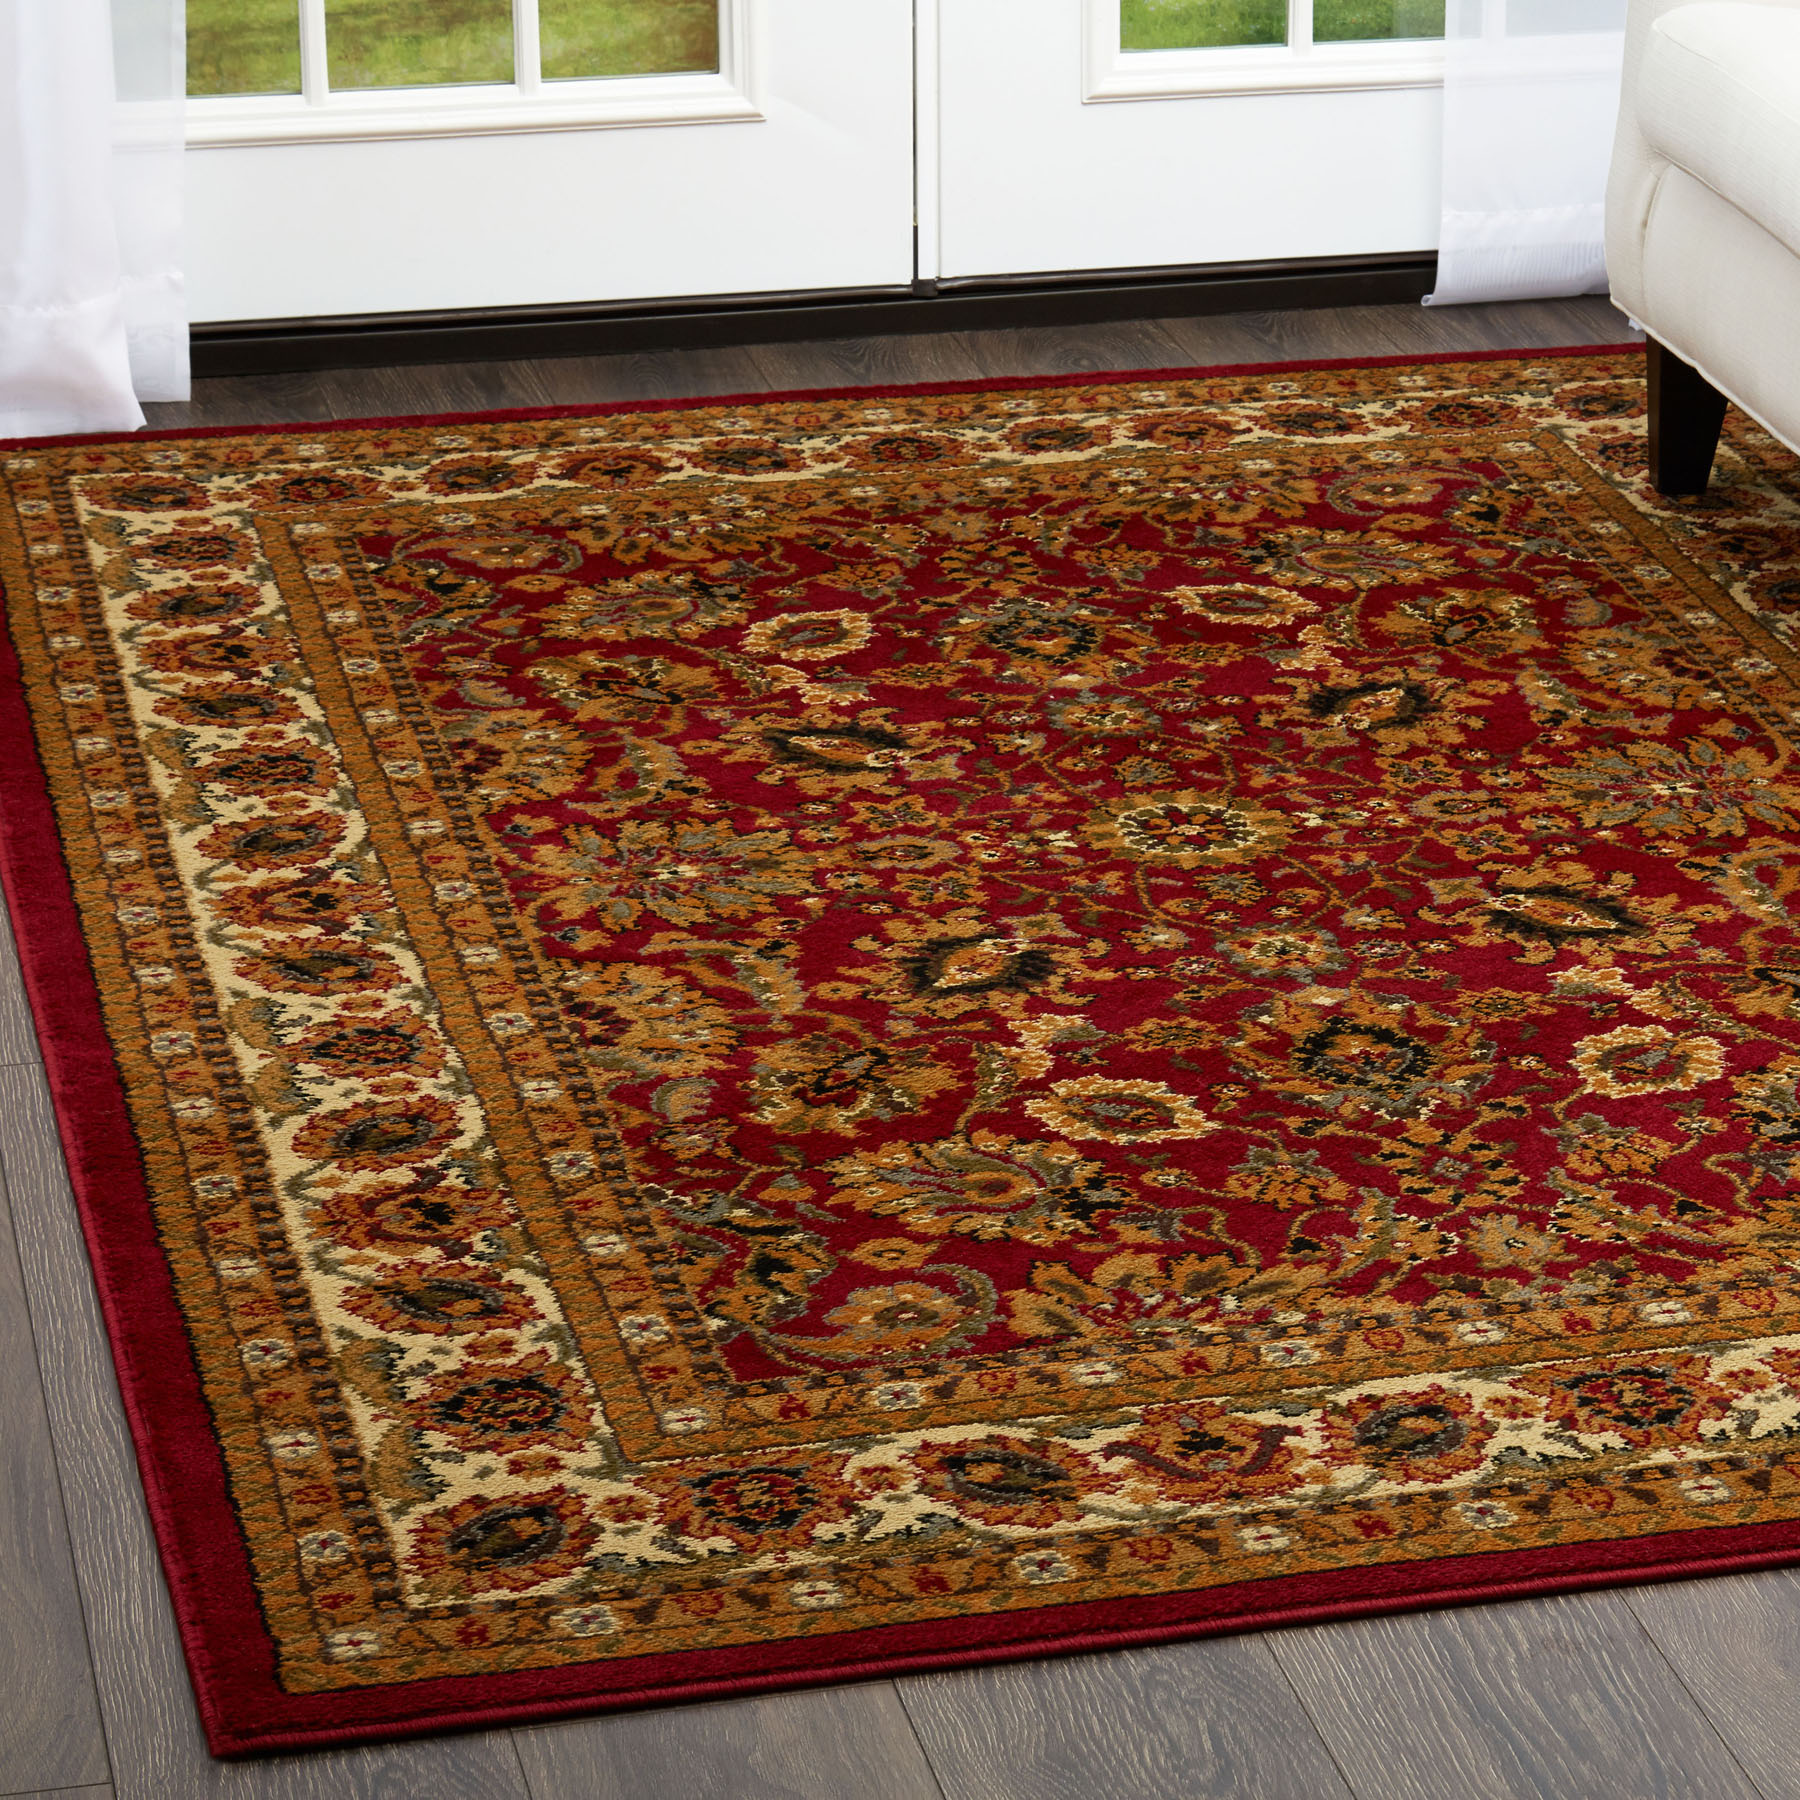 Details About Red Oriental Area Rug Persien Style Floral Vines Oval Round Carpet Runner